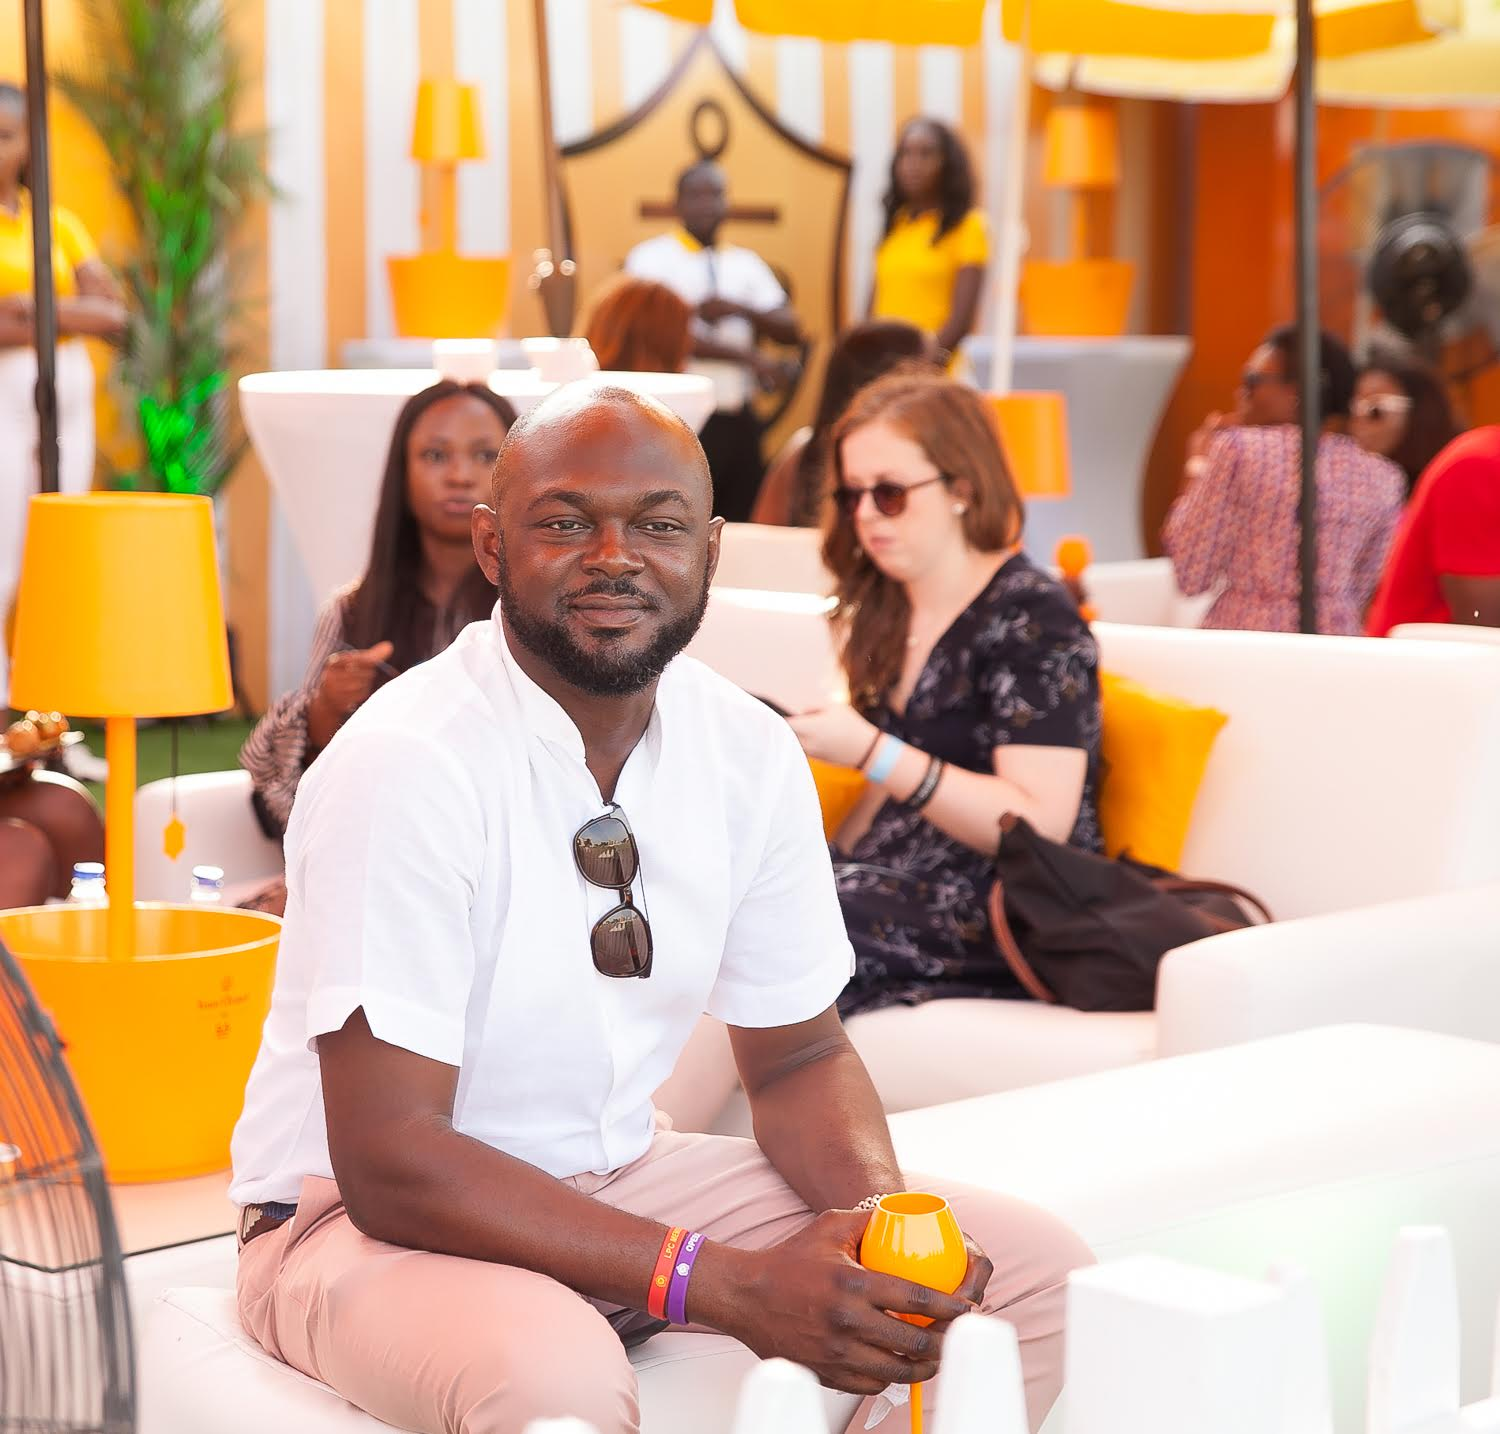 Our Best Looks At The 2019 Veuve Clicquot Polo #Yelloweek Day  3